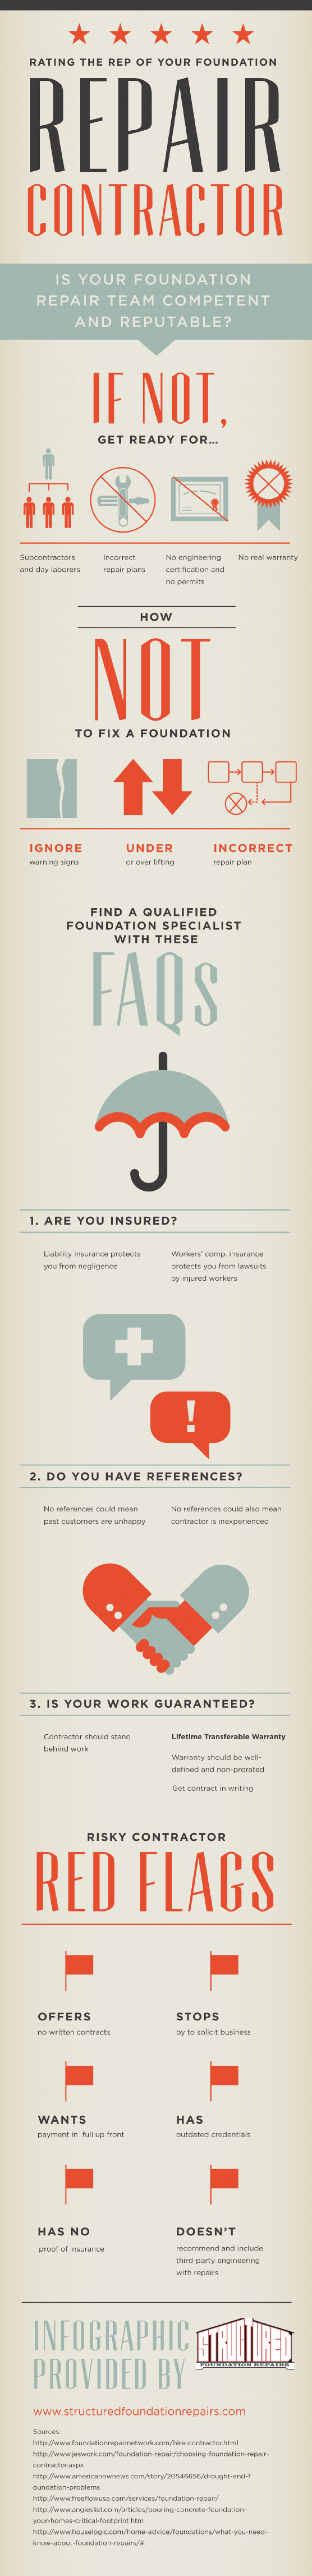 Rating the Rep of Your Foundation Repair Contractor  Infographic